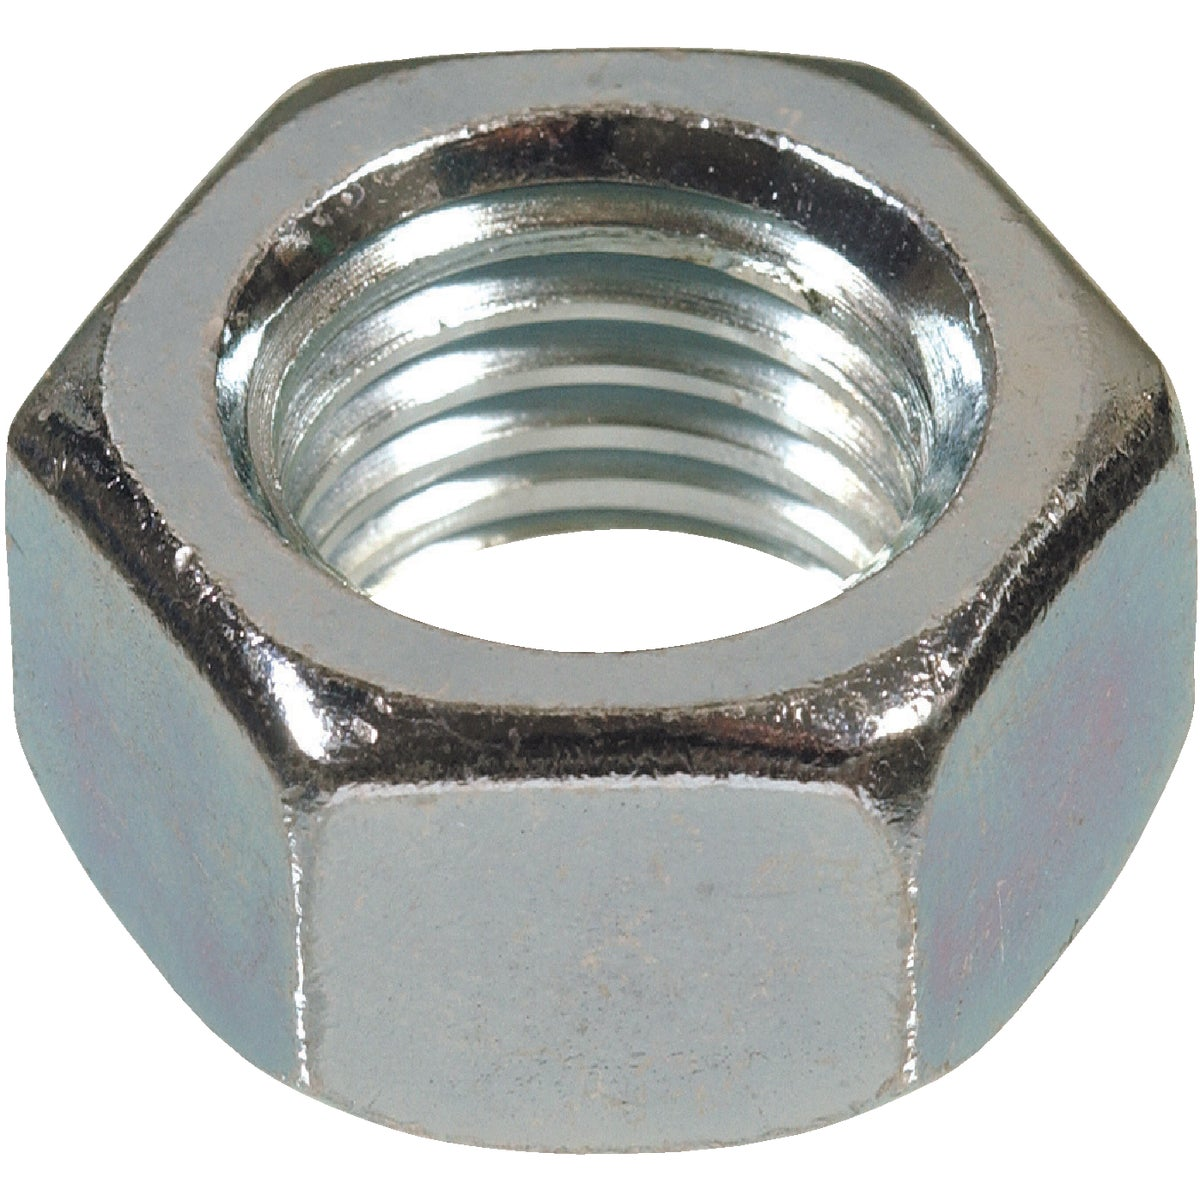 3/8-16 C THREAD HEX NUT - 150009 by Hillman Fastener